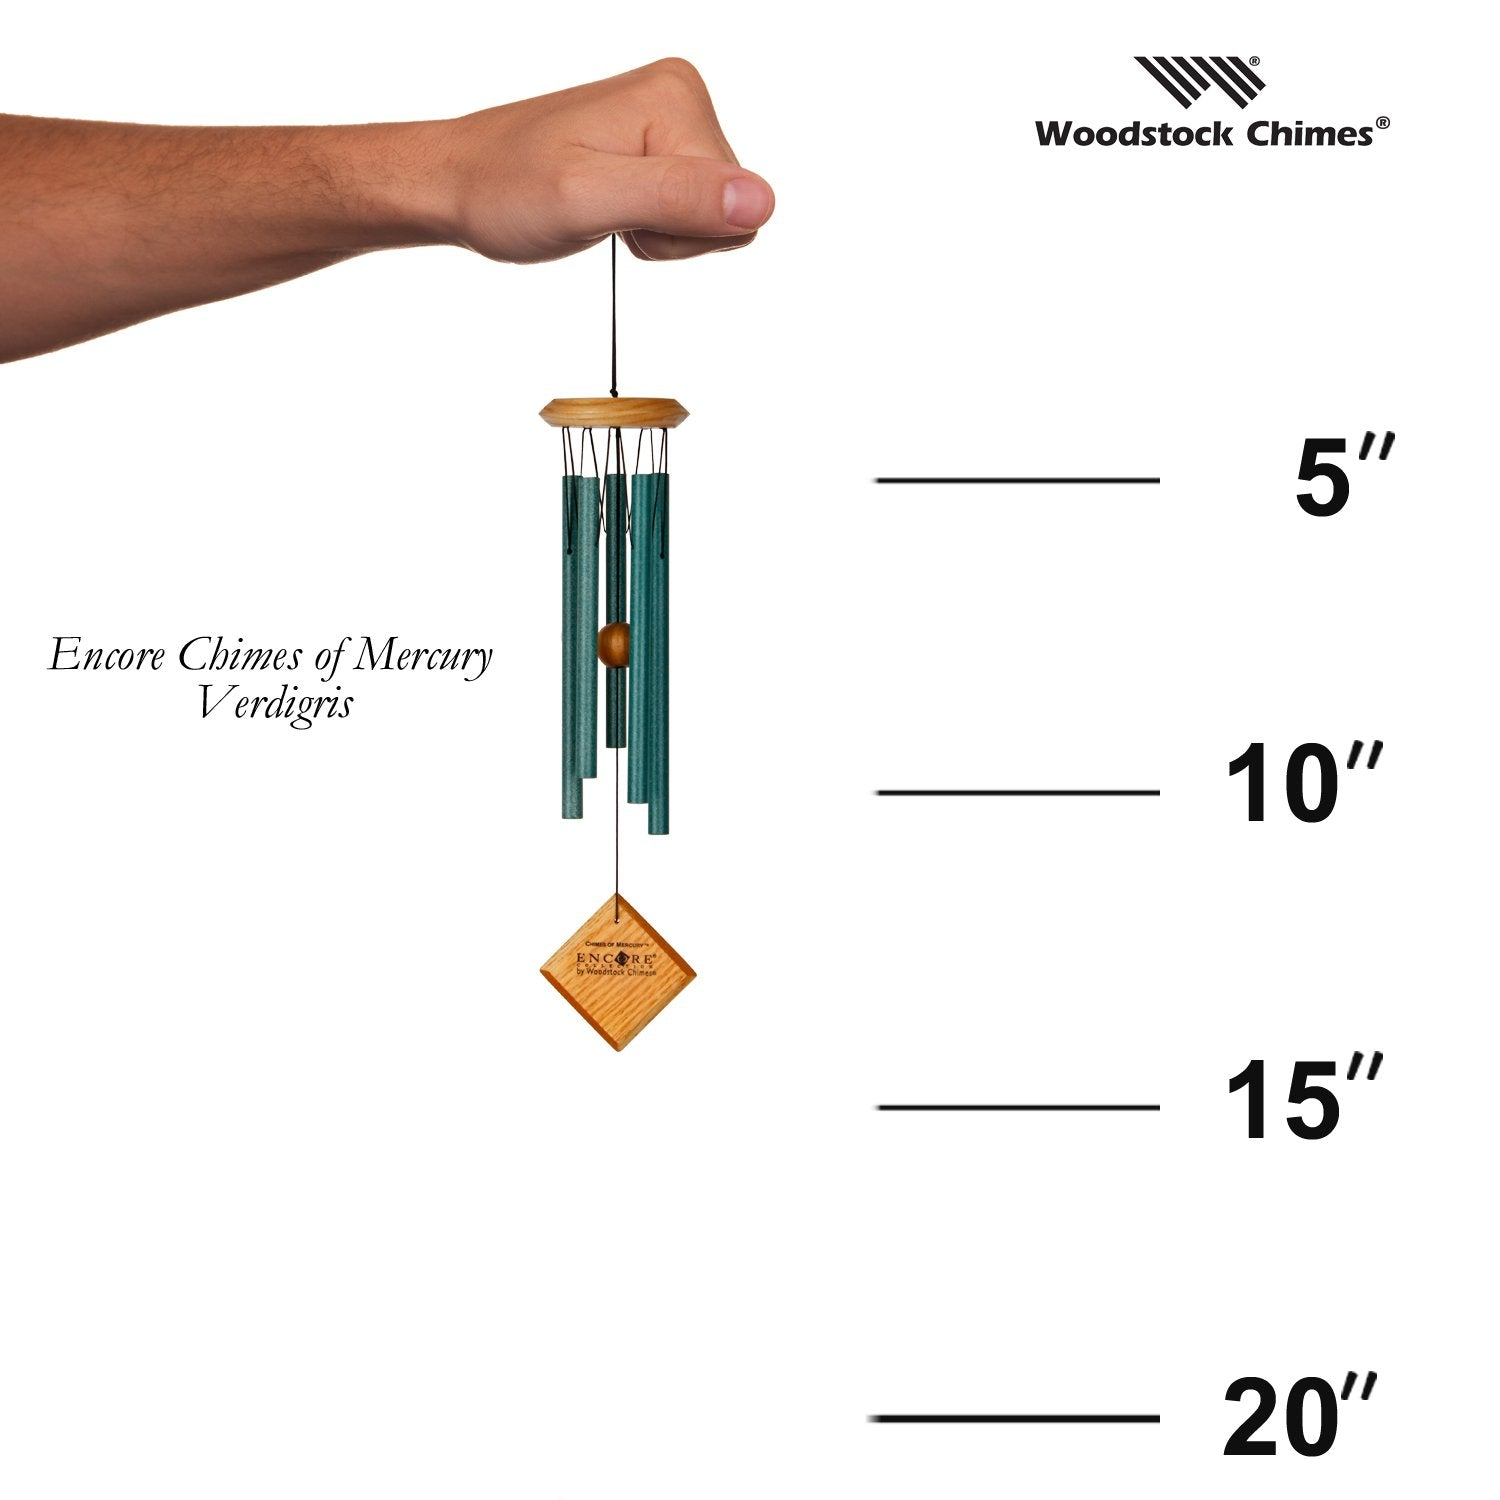 Encore Chimes of Mercury - Verdigris proportion image